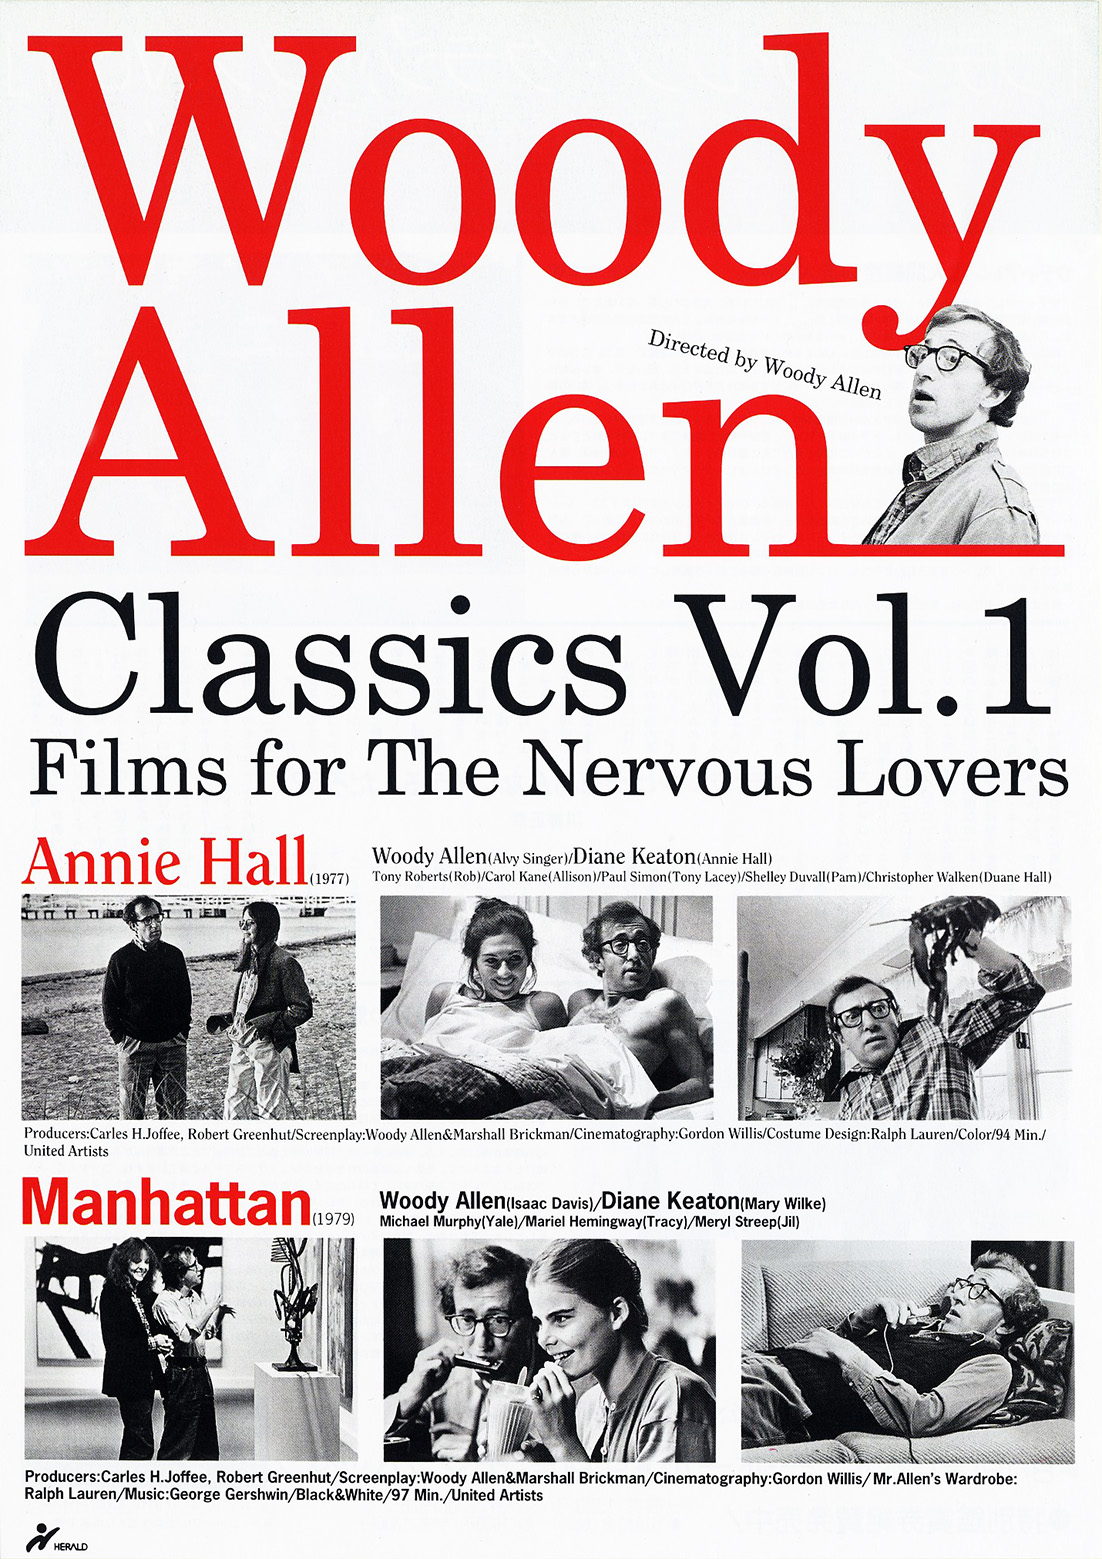 Woody Allen Classics Vol.1 Flyer